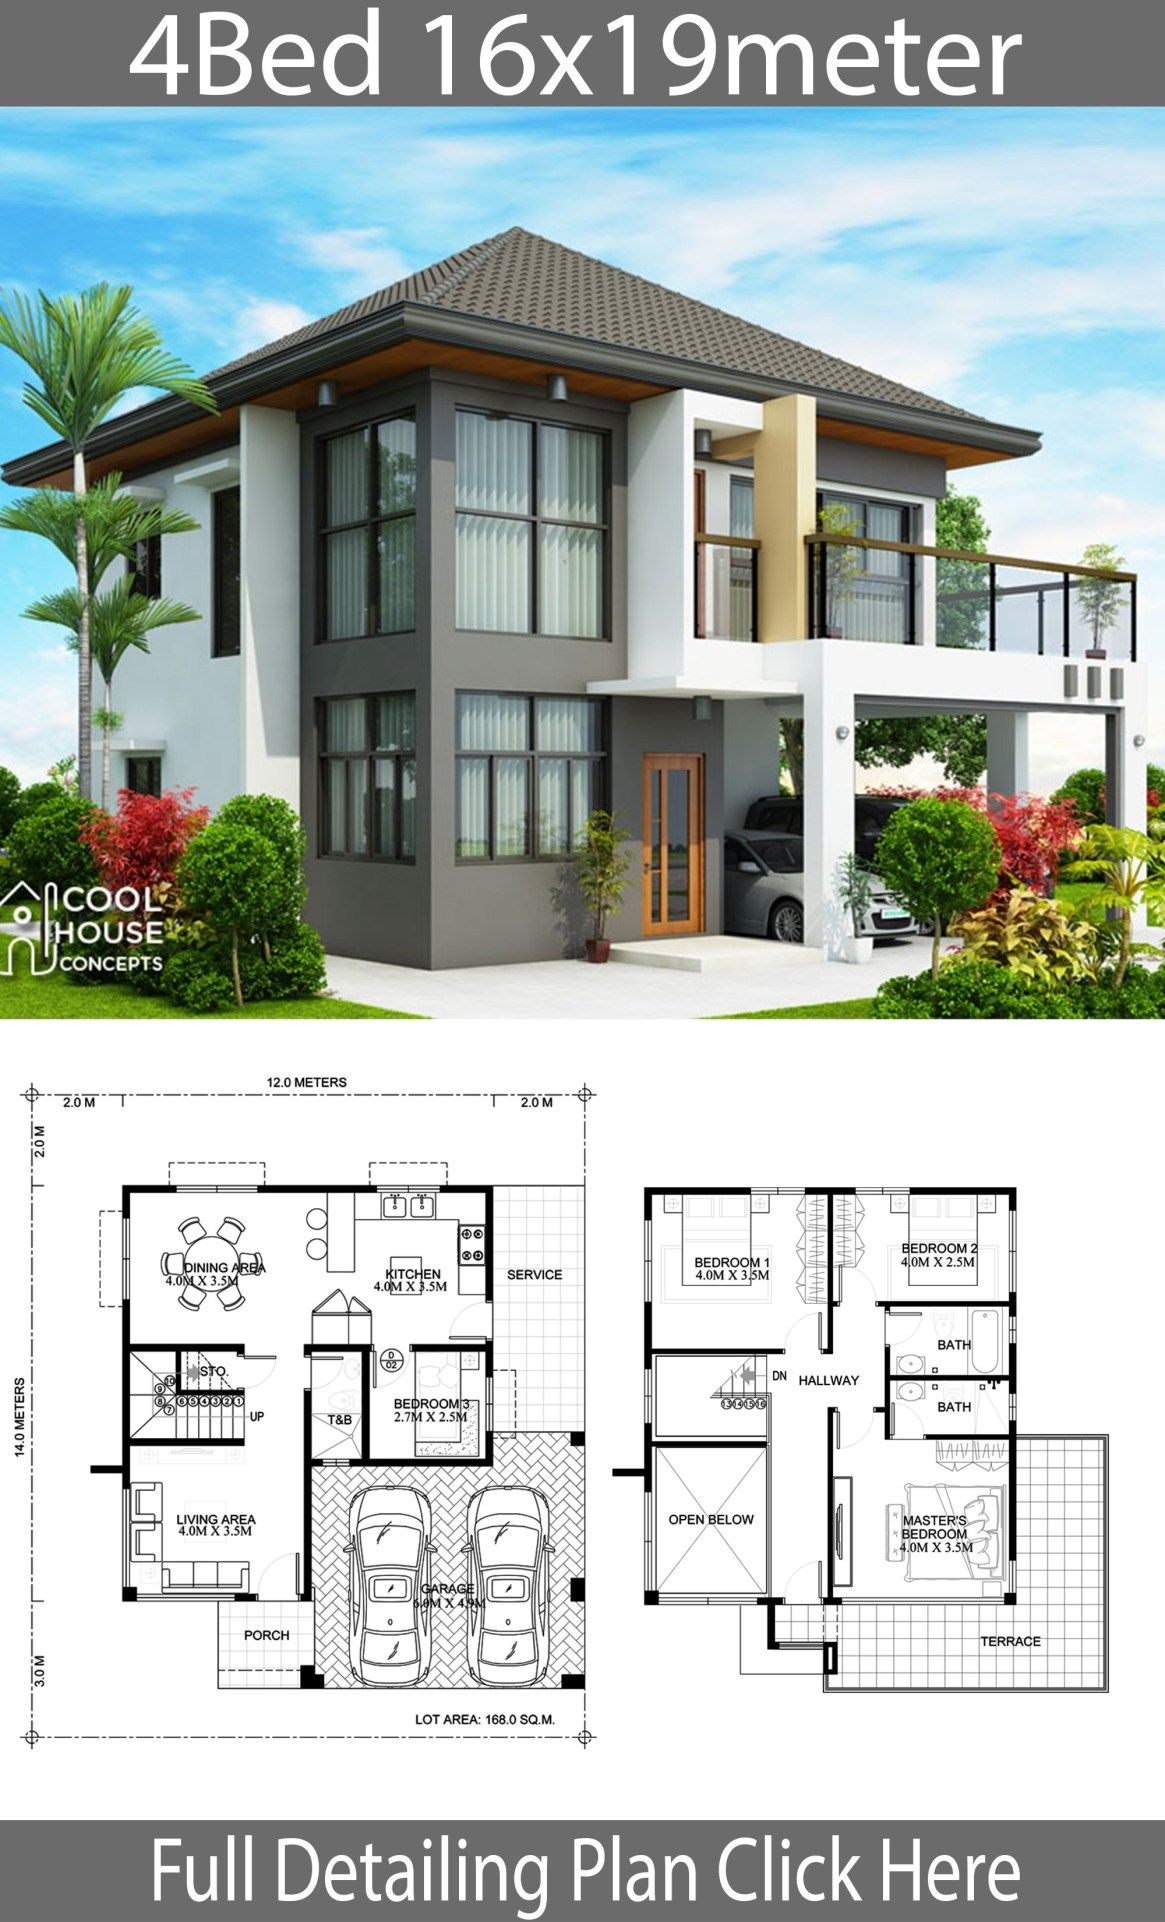 Home design plan 16x19m with 4 Bedrooms is part of Home design plan - Home design plan 16x19m with 4 Bedrooms House descriptionOne Car Parking and gardenGround Level Living room, One Bedroom, Dining room,